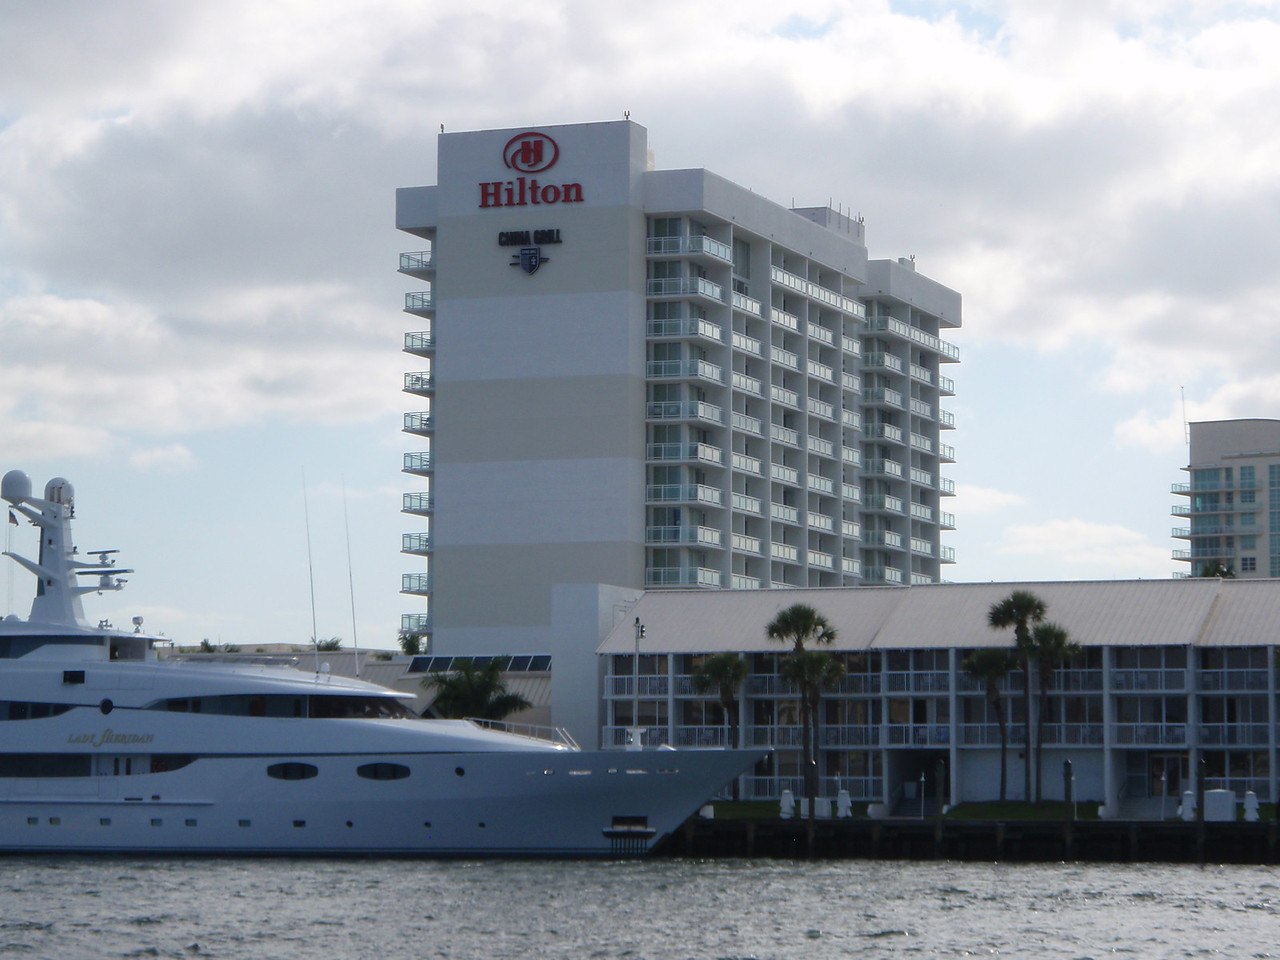 Here is a good view of our hotel from the water taxi.